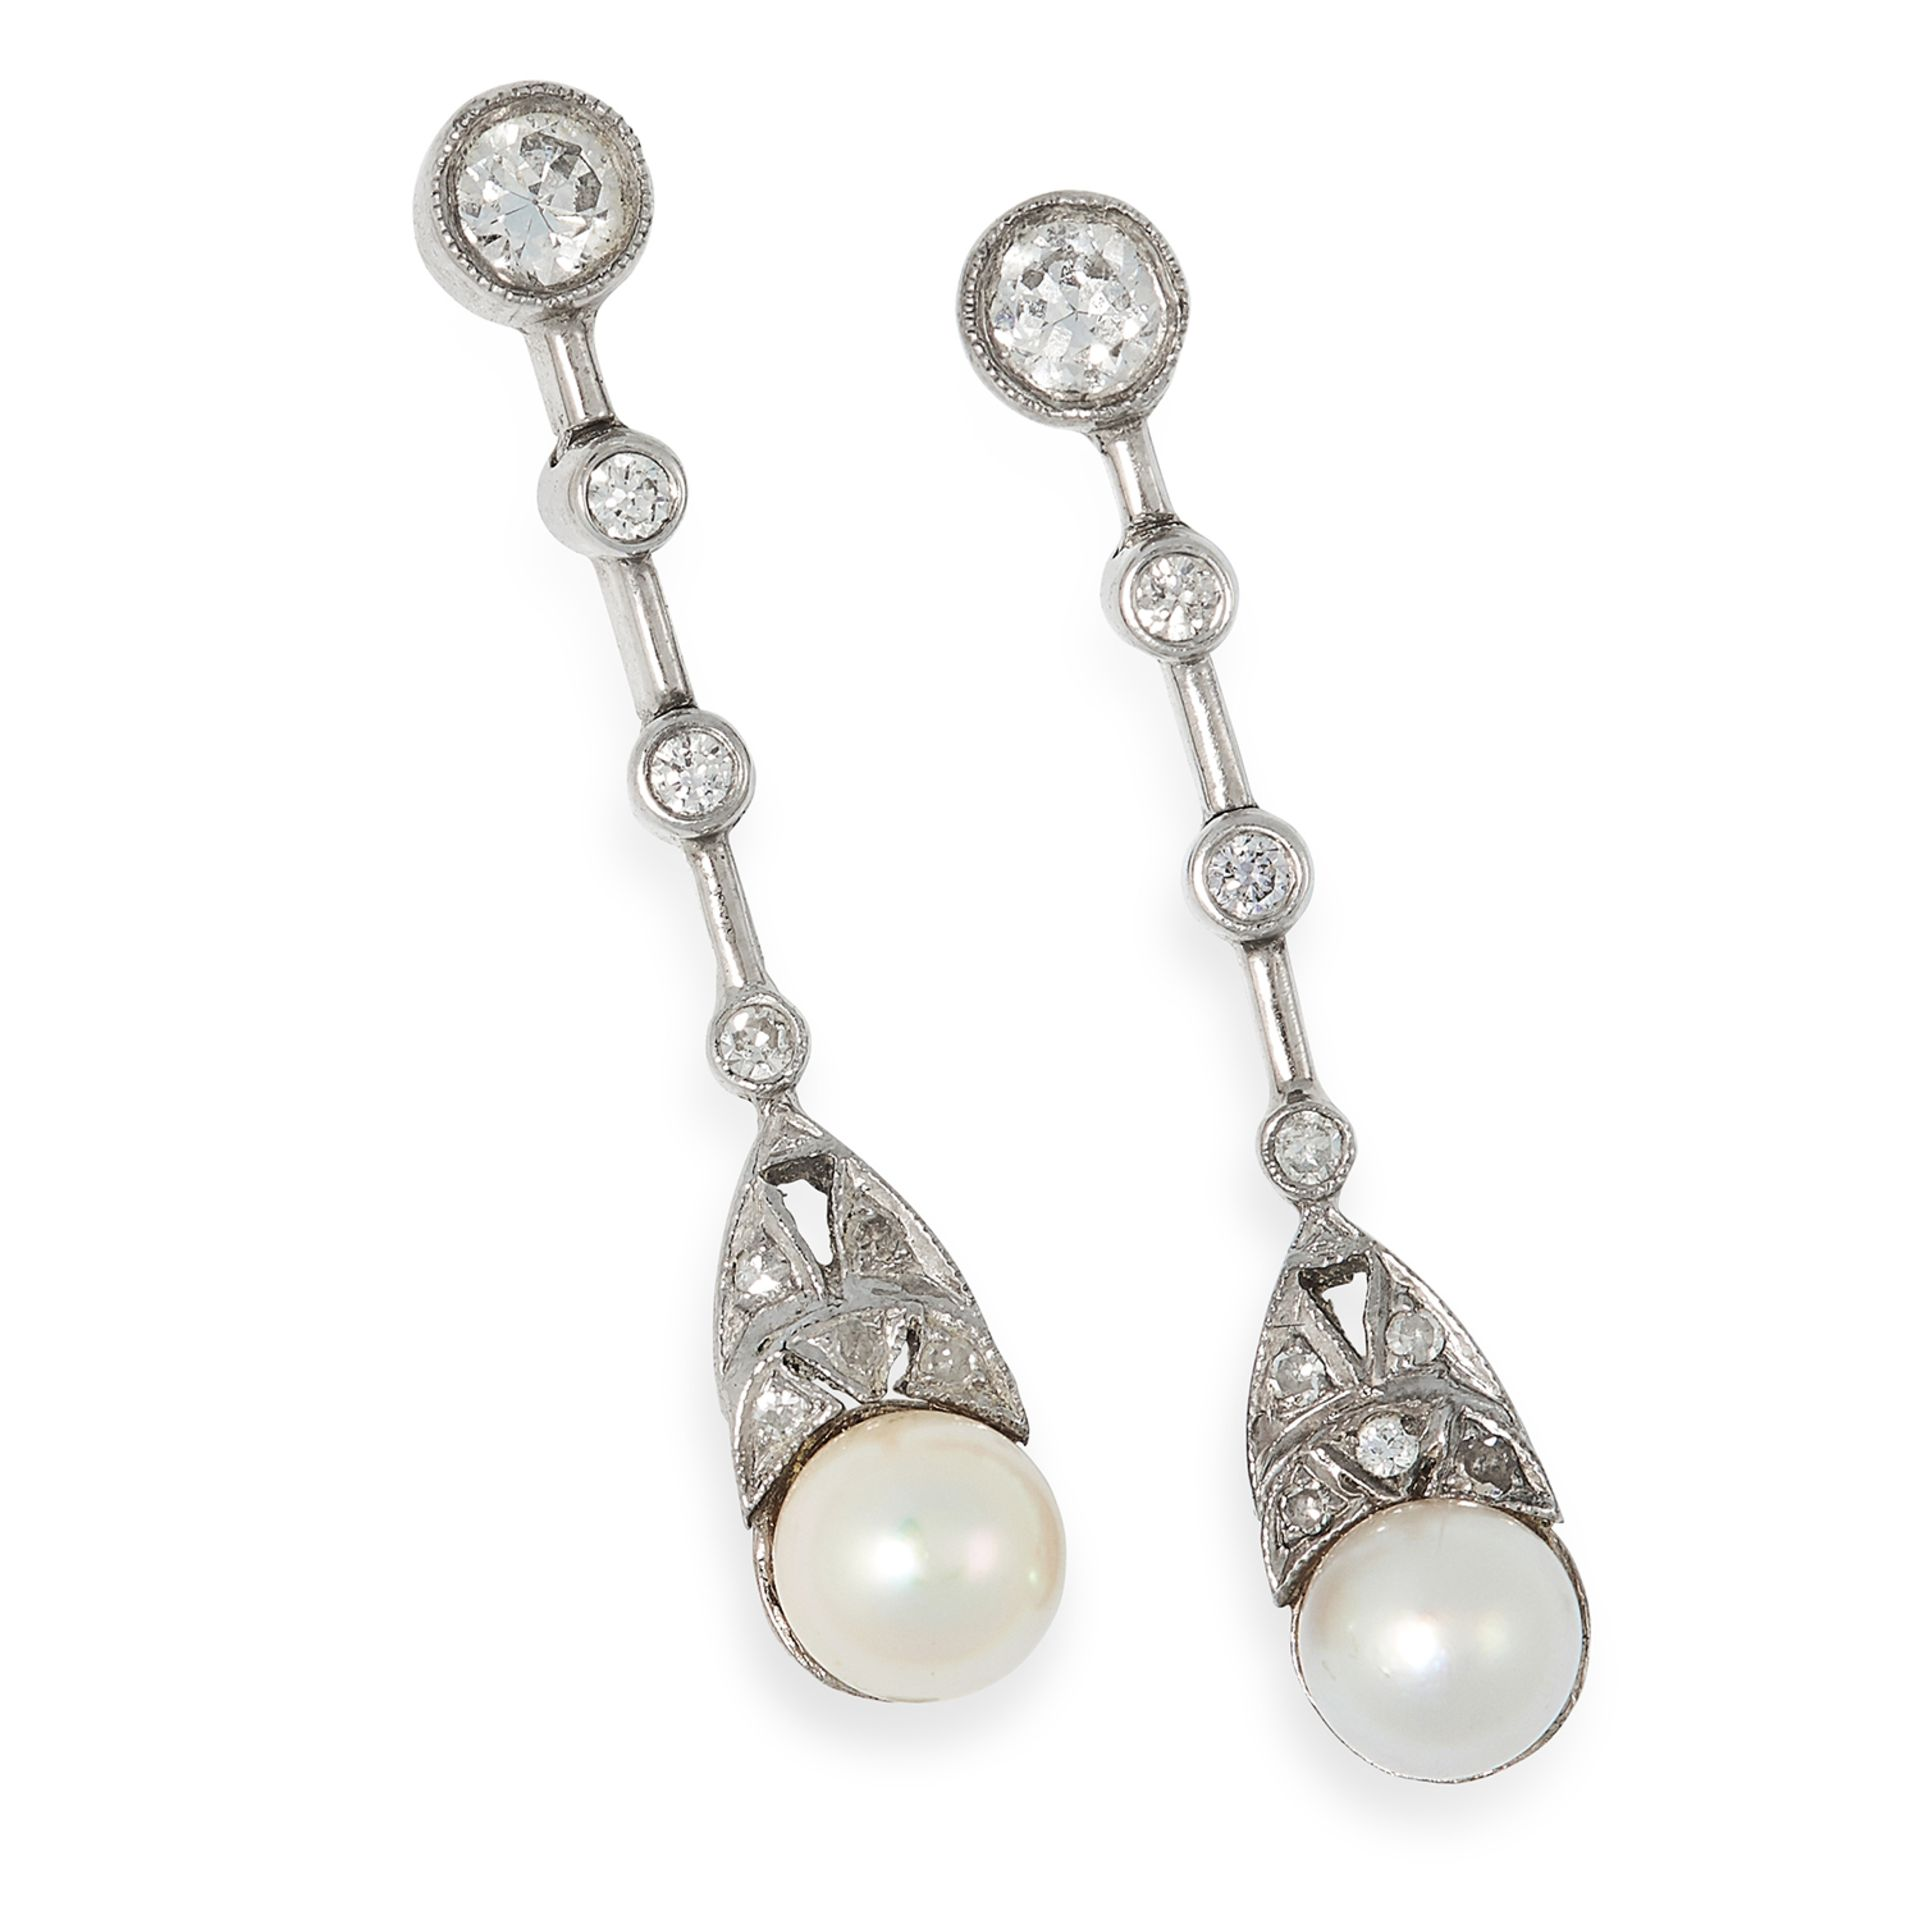 PEARL AND DIAMOND EARRINGS in Art Deco design set with round cut diamonds and pearls, 2.9cm, 4g.